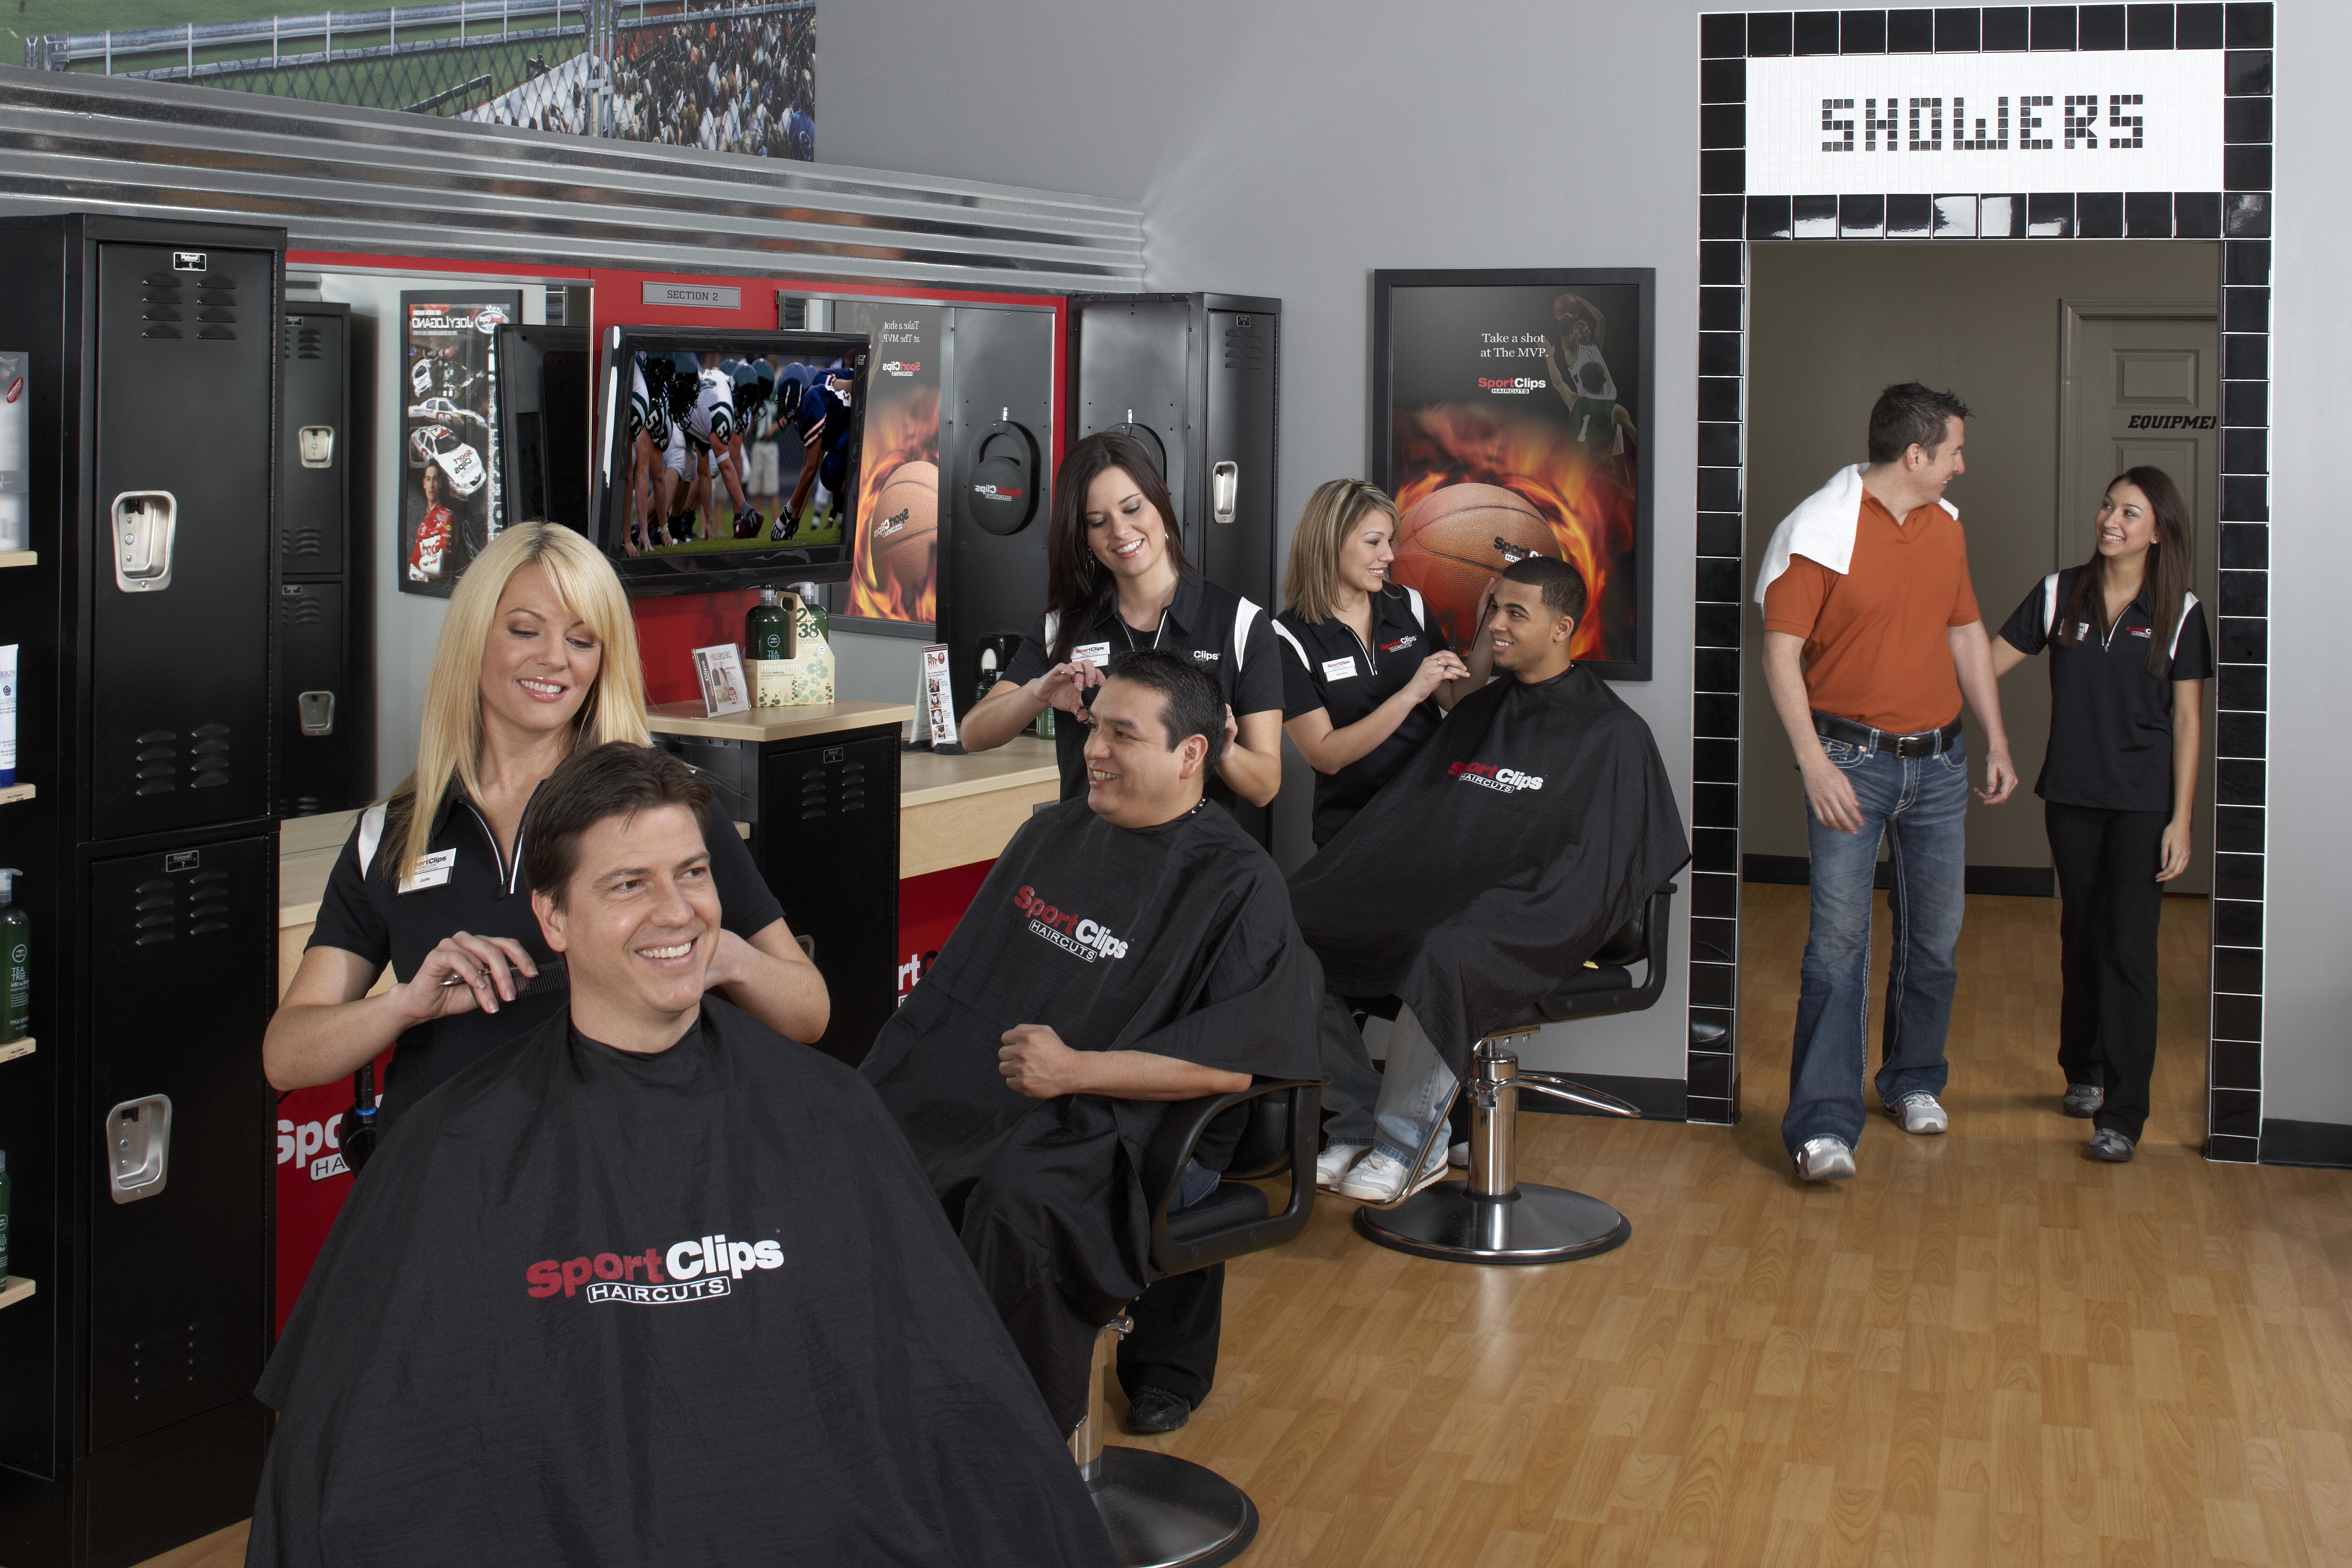 Find 5 listings related to Sports Clips in Branson on kinoframe.ga See reviews, photos, directions, phone numbers and more for Sports Clips locations in Branson, MO. Start your search by typing in the business name below.